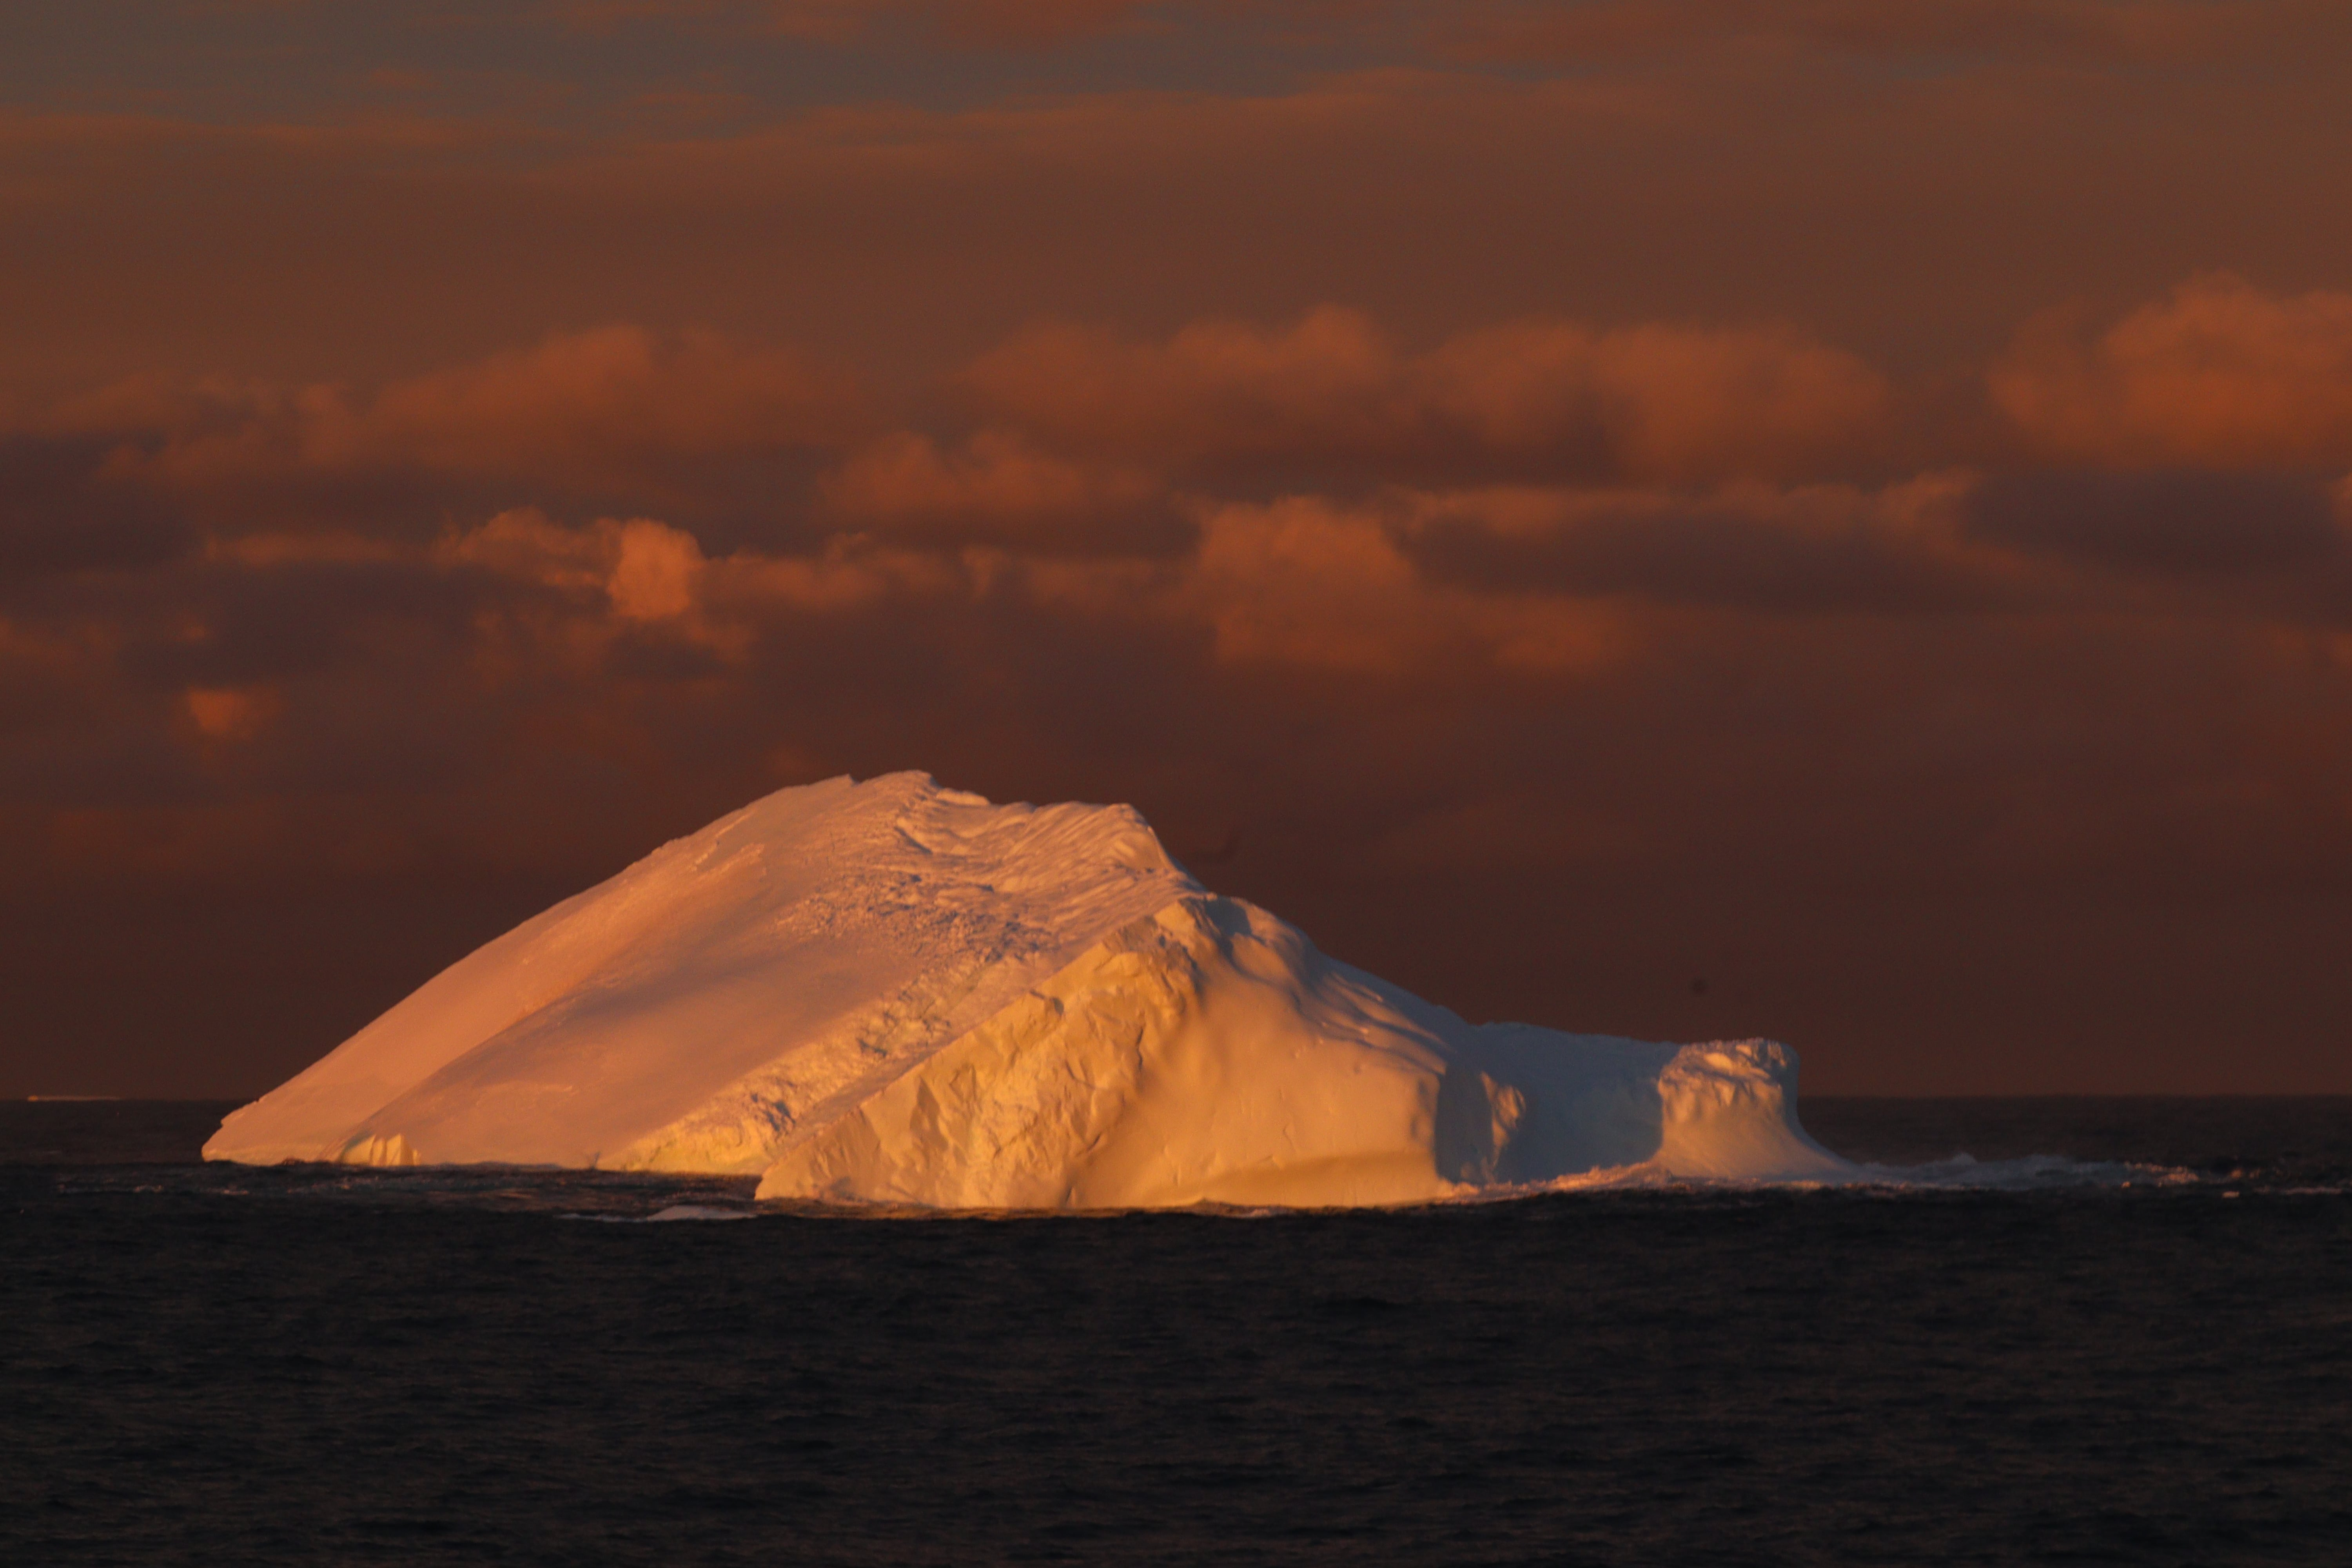 An iceburg during sunset in the Antarctic. Photo by Merinda McMahon.